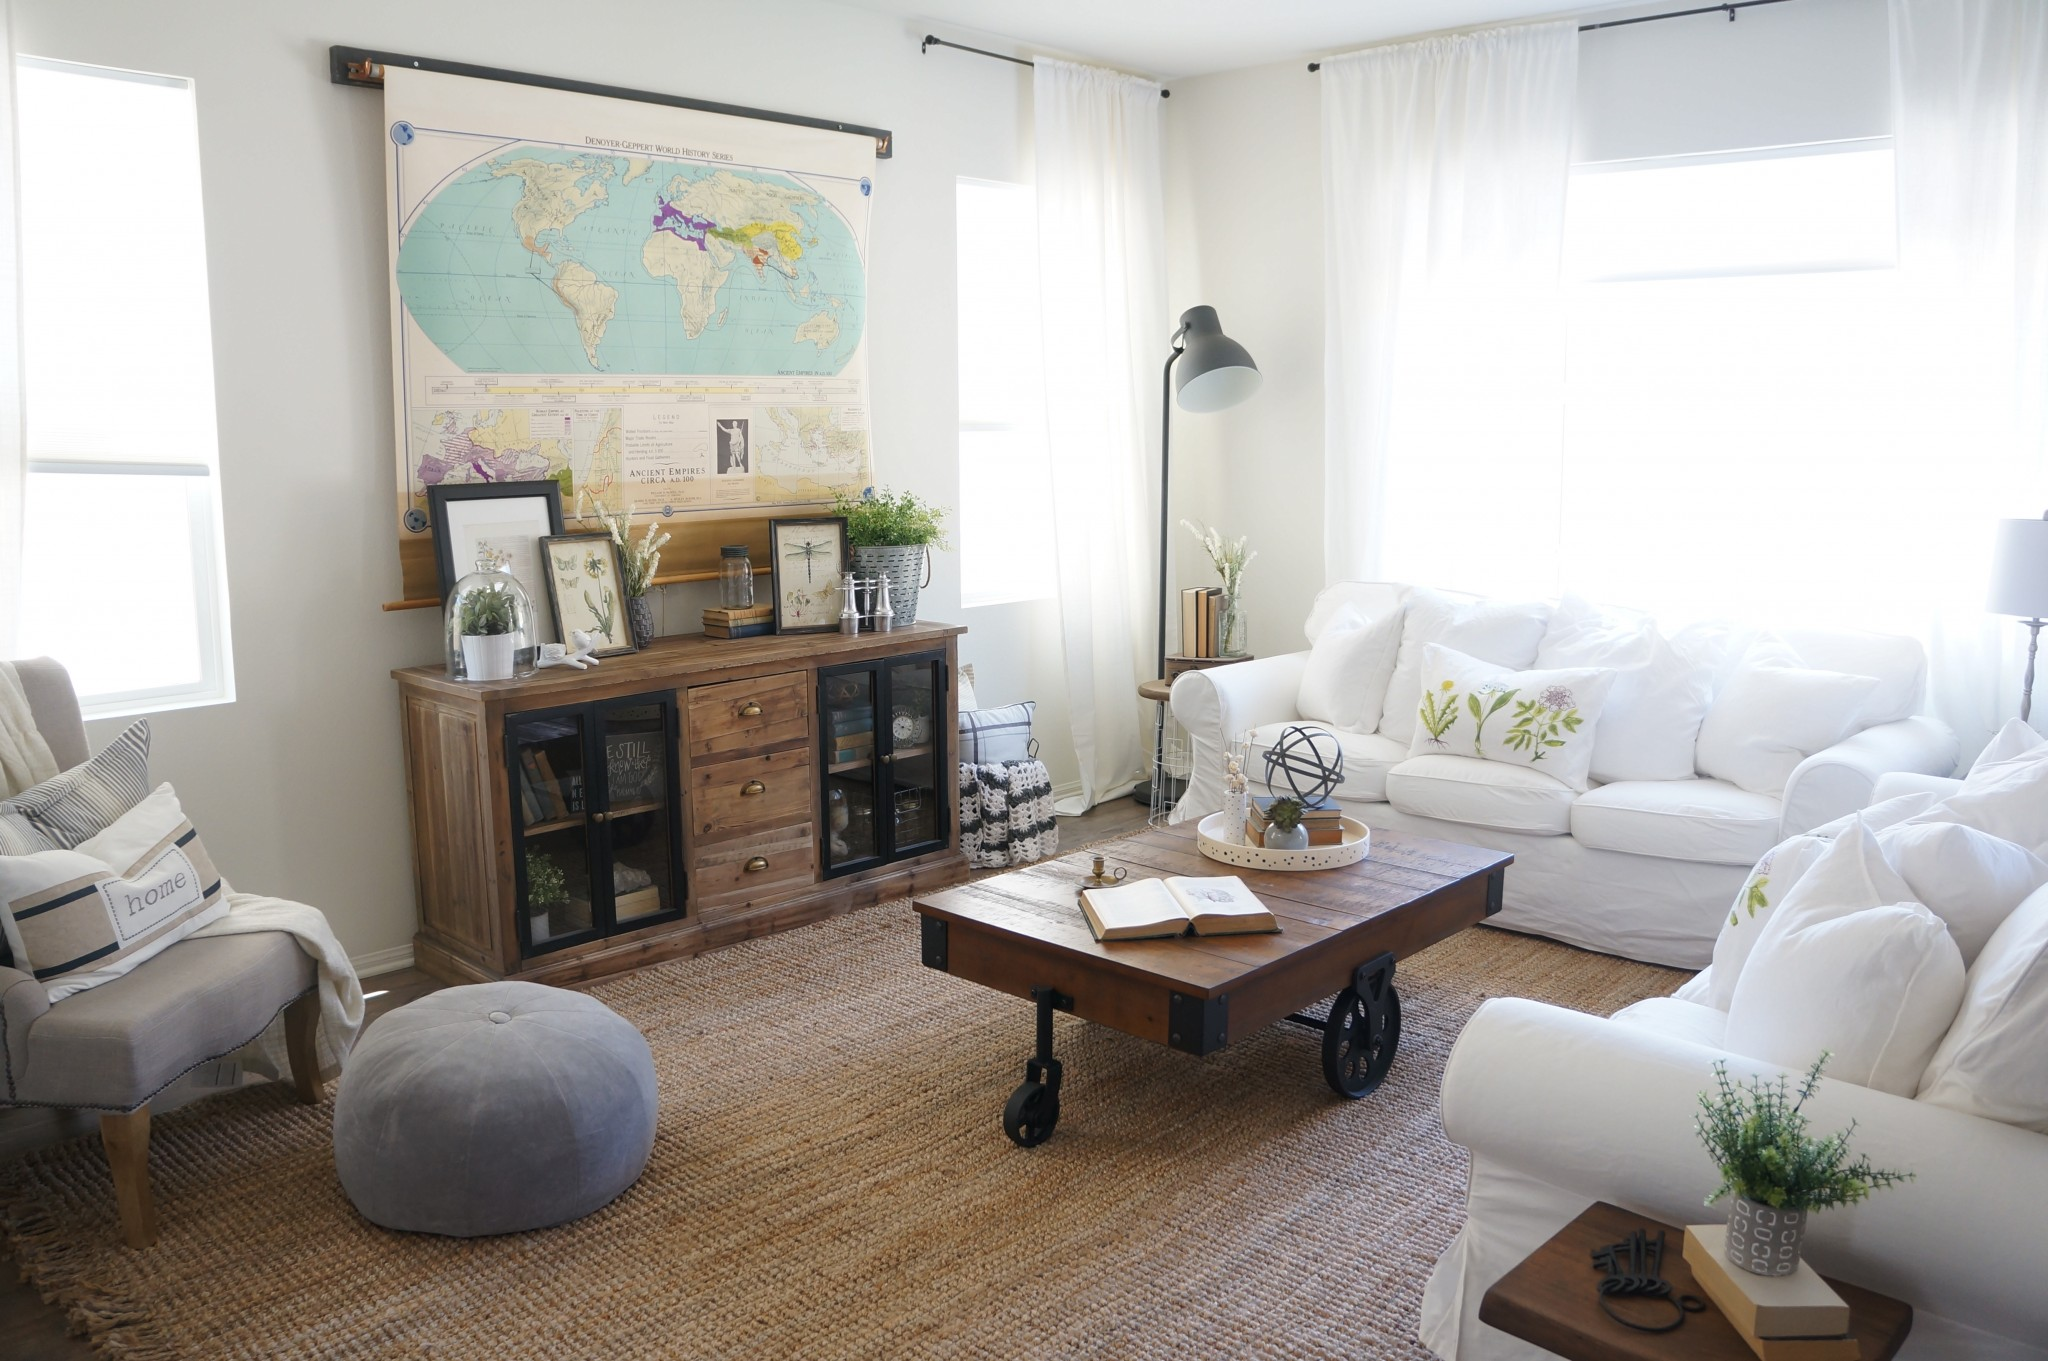 hiding tv in living room layout with corner clever and diyable ways to hide a flat screen addicted 2 use vintage map cover mounted on